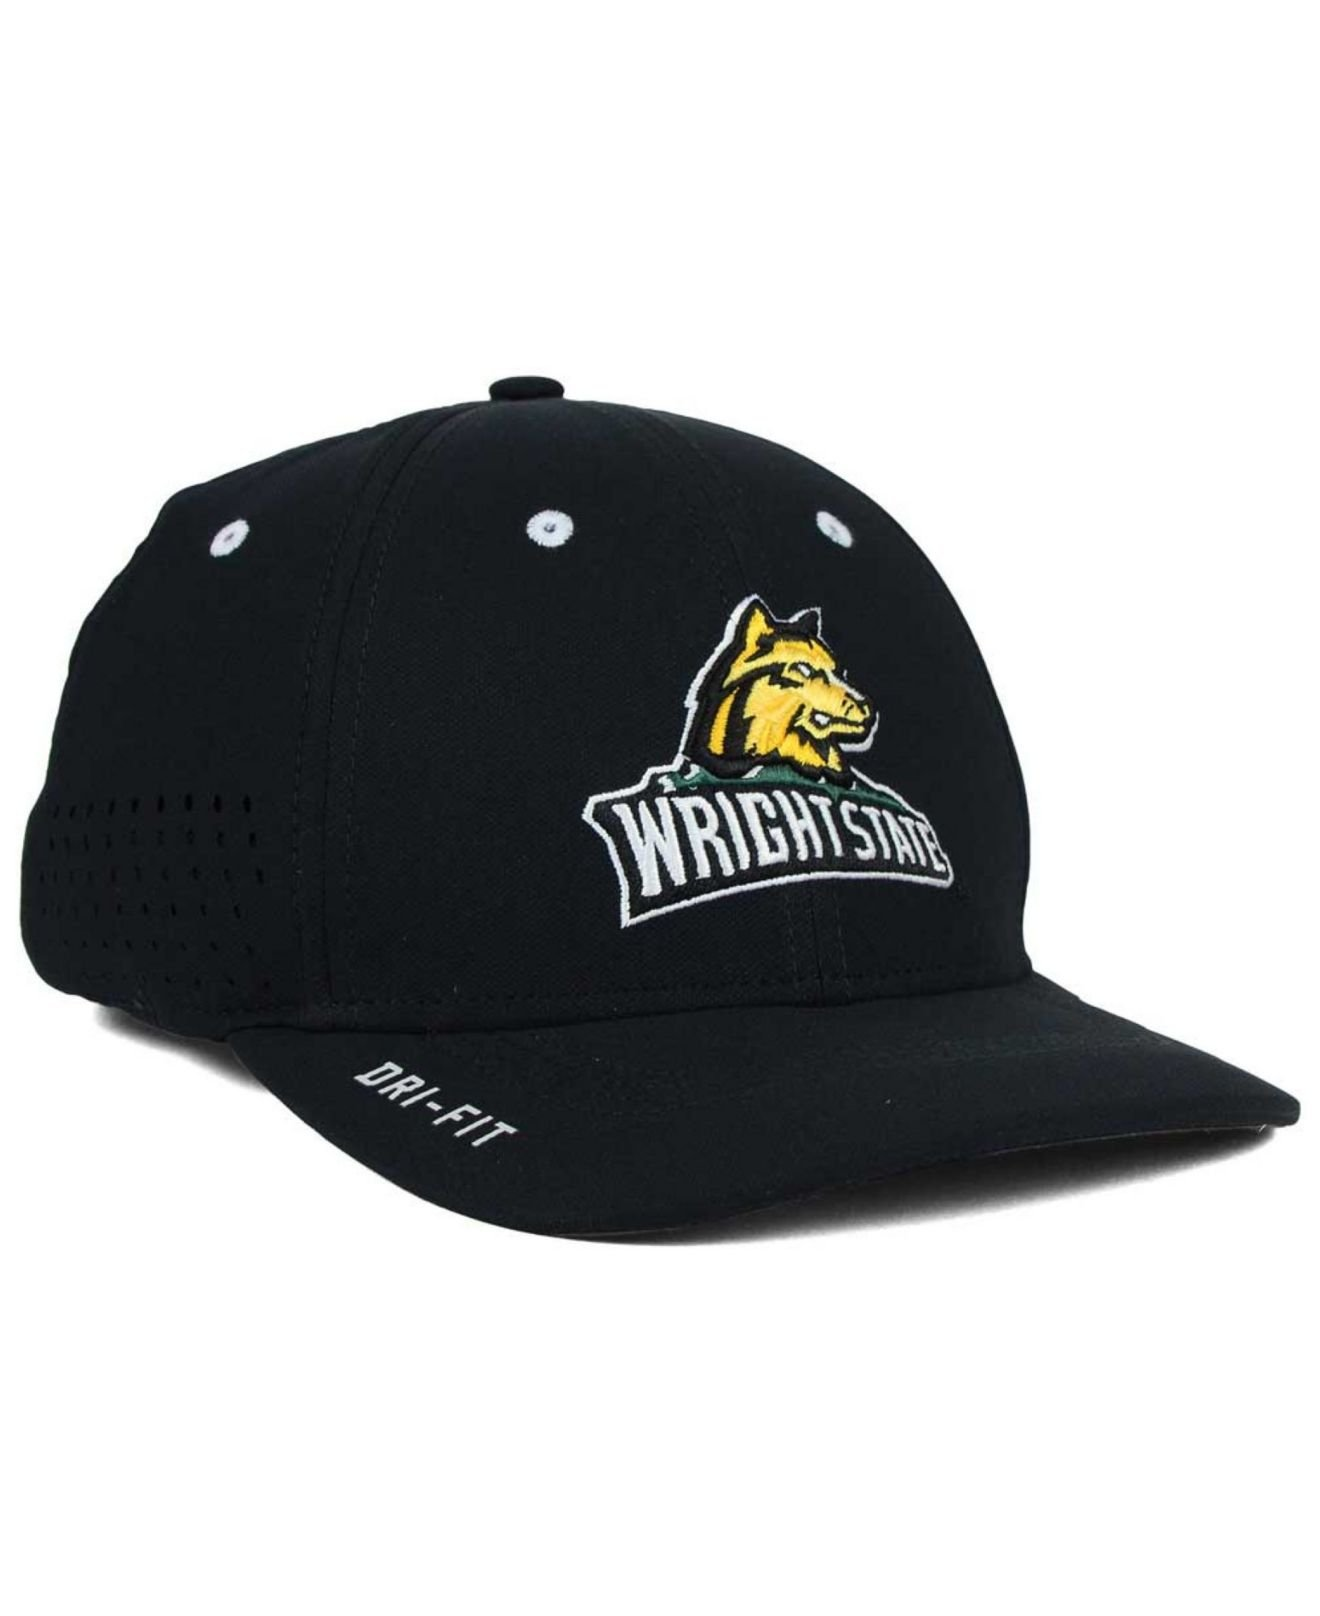 94b1cc985 Lyst - Nike Wright State Raiders Sideline Cap in Black for Men